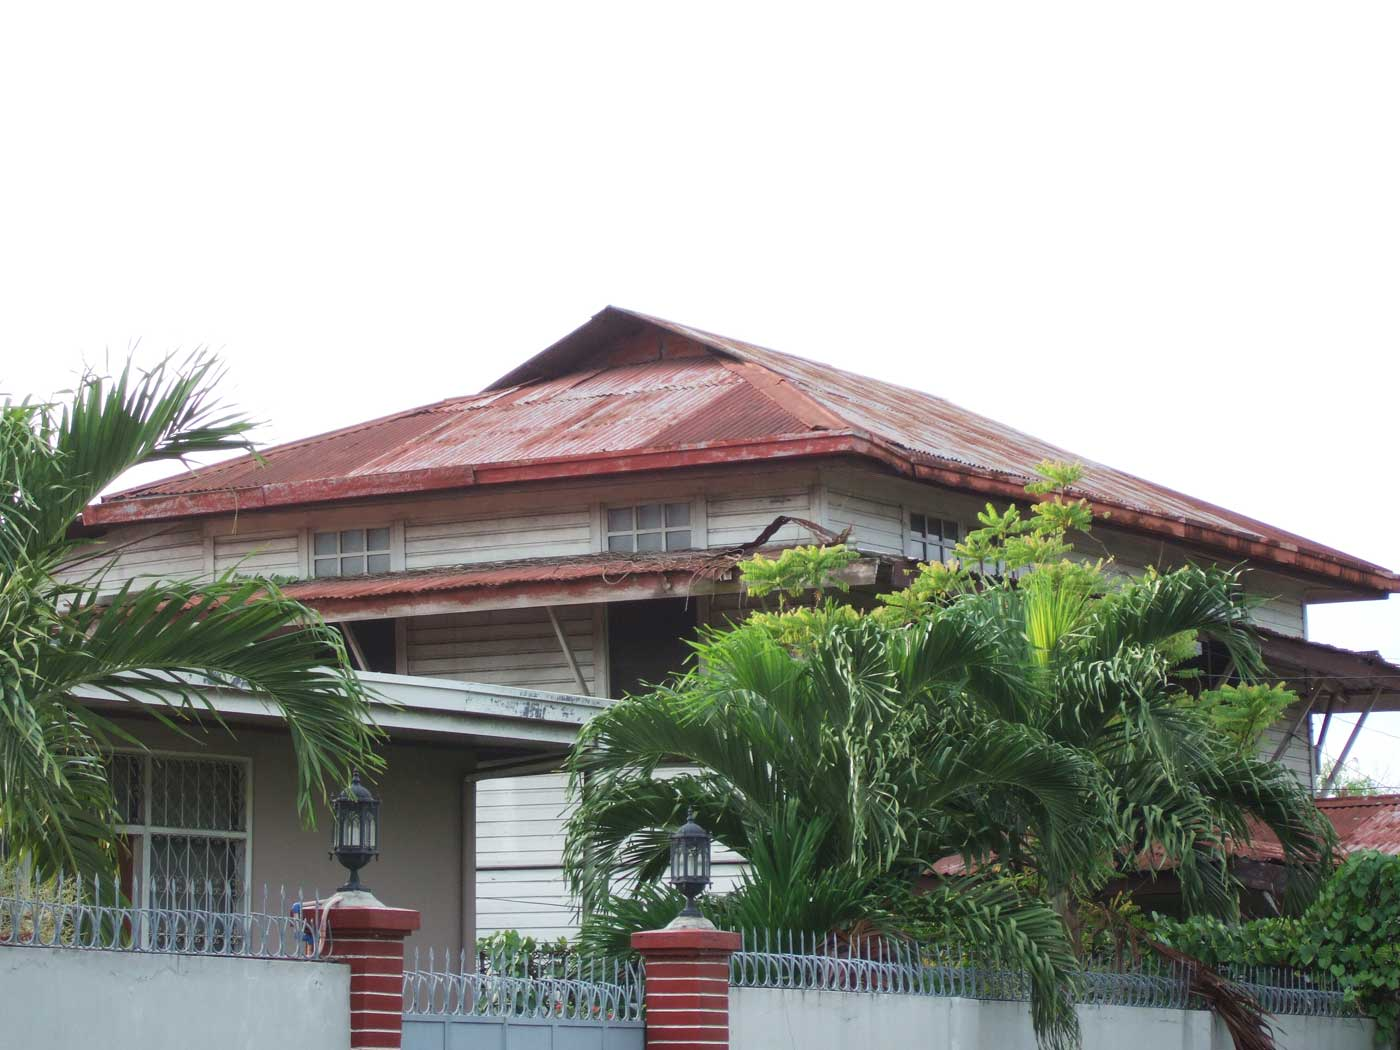 Roof structure on old house, Molo, Iloilo City